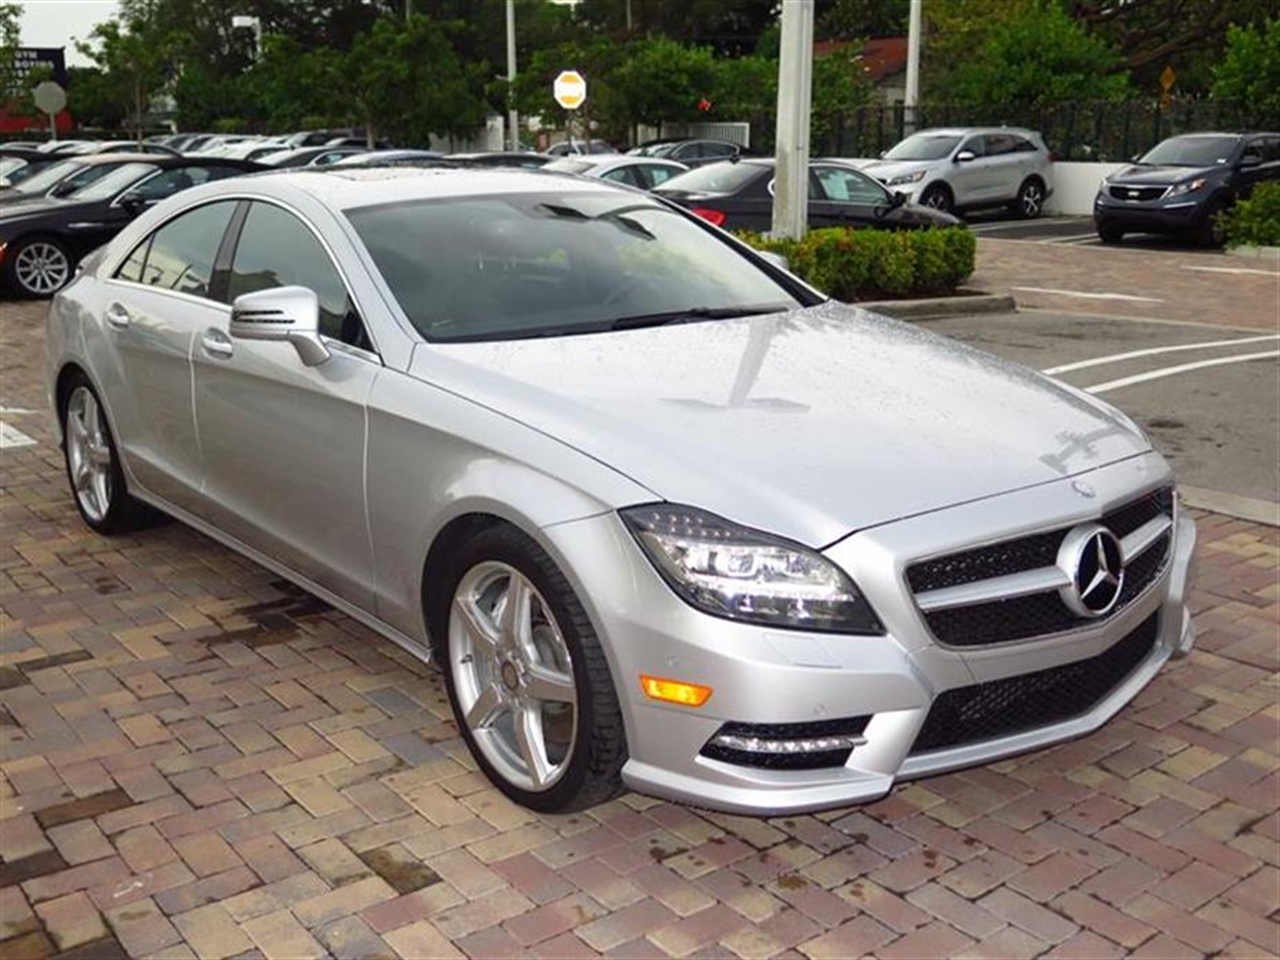 2014 Mercedes CLS-CLASS 4dr Sdn CLS550 RWD 8874 miles 2 Seatback Storage Pockets 3 12V DC Power